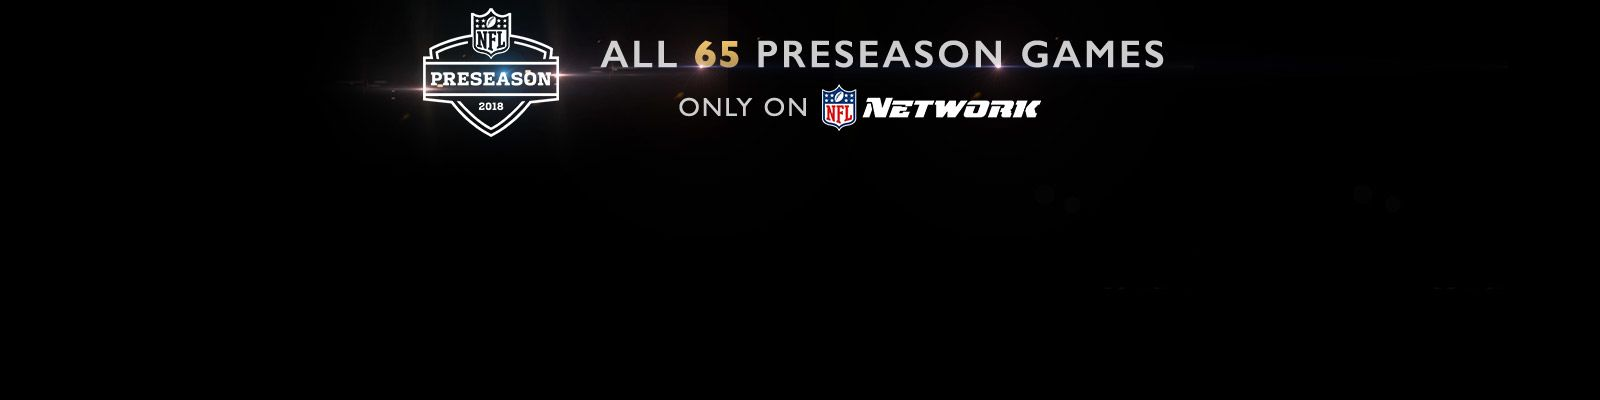 2018 NFL Preseason on NFL Network